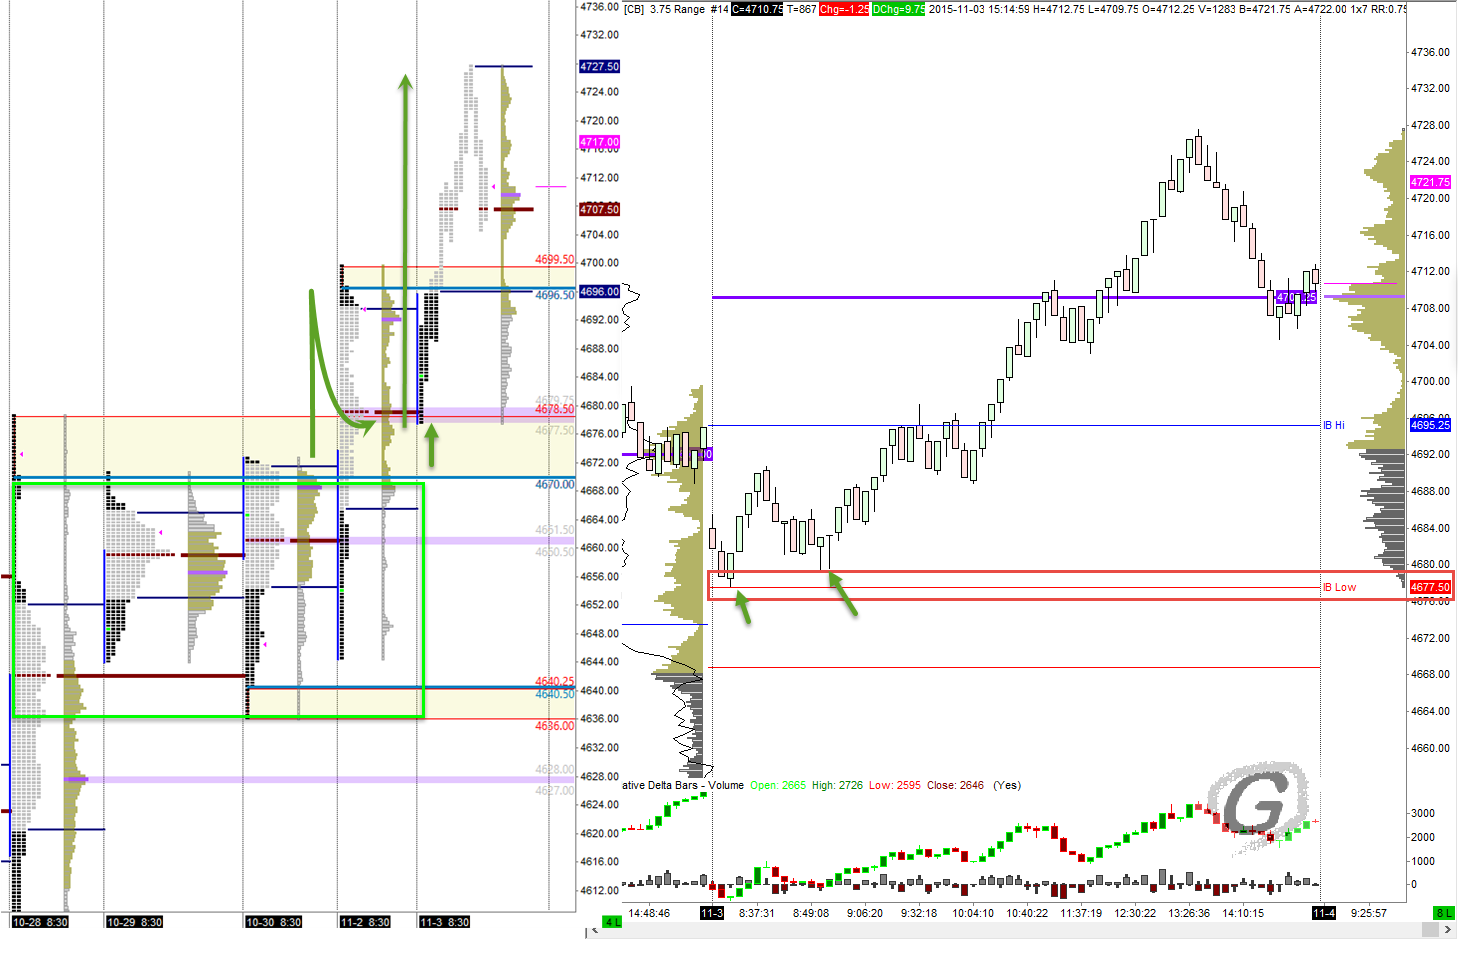 NQ Futures EOD review. Chart created using Sierra Chart.